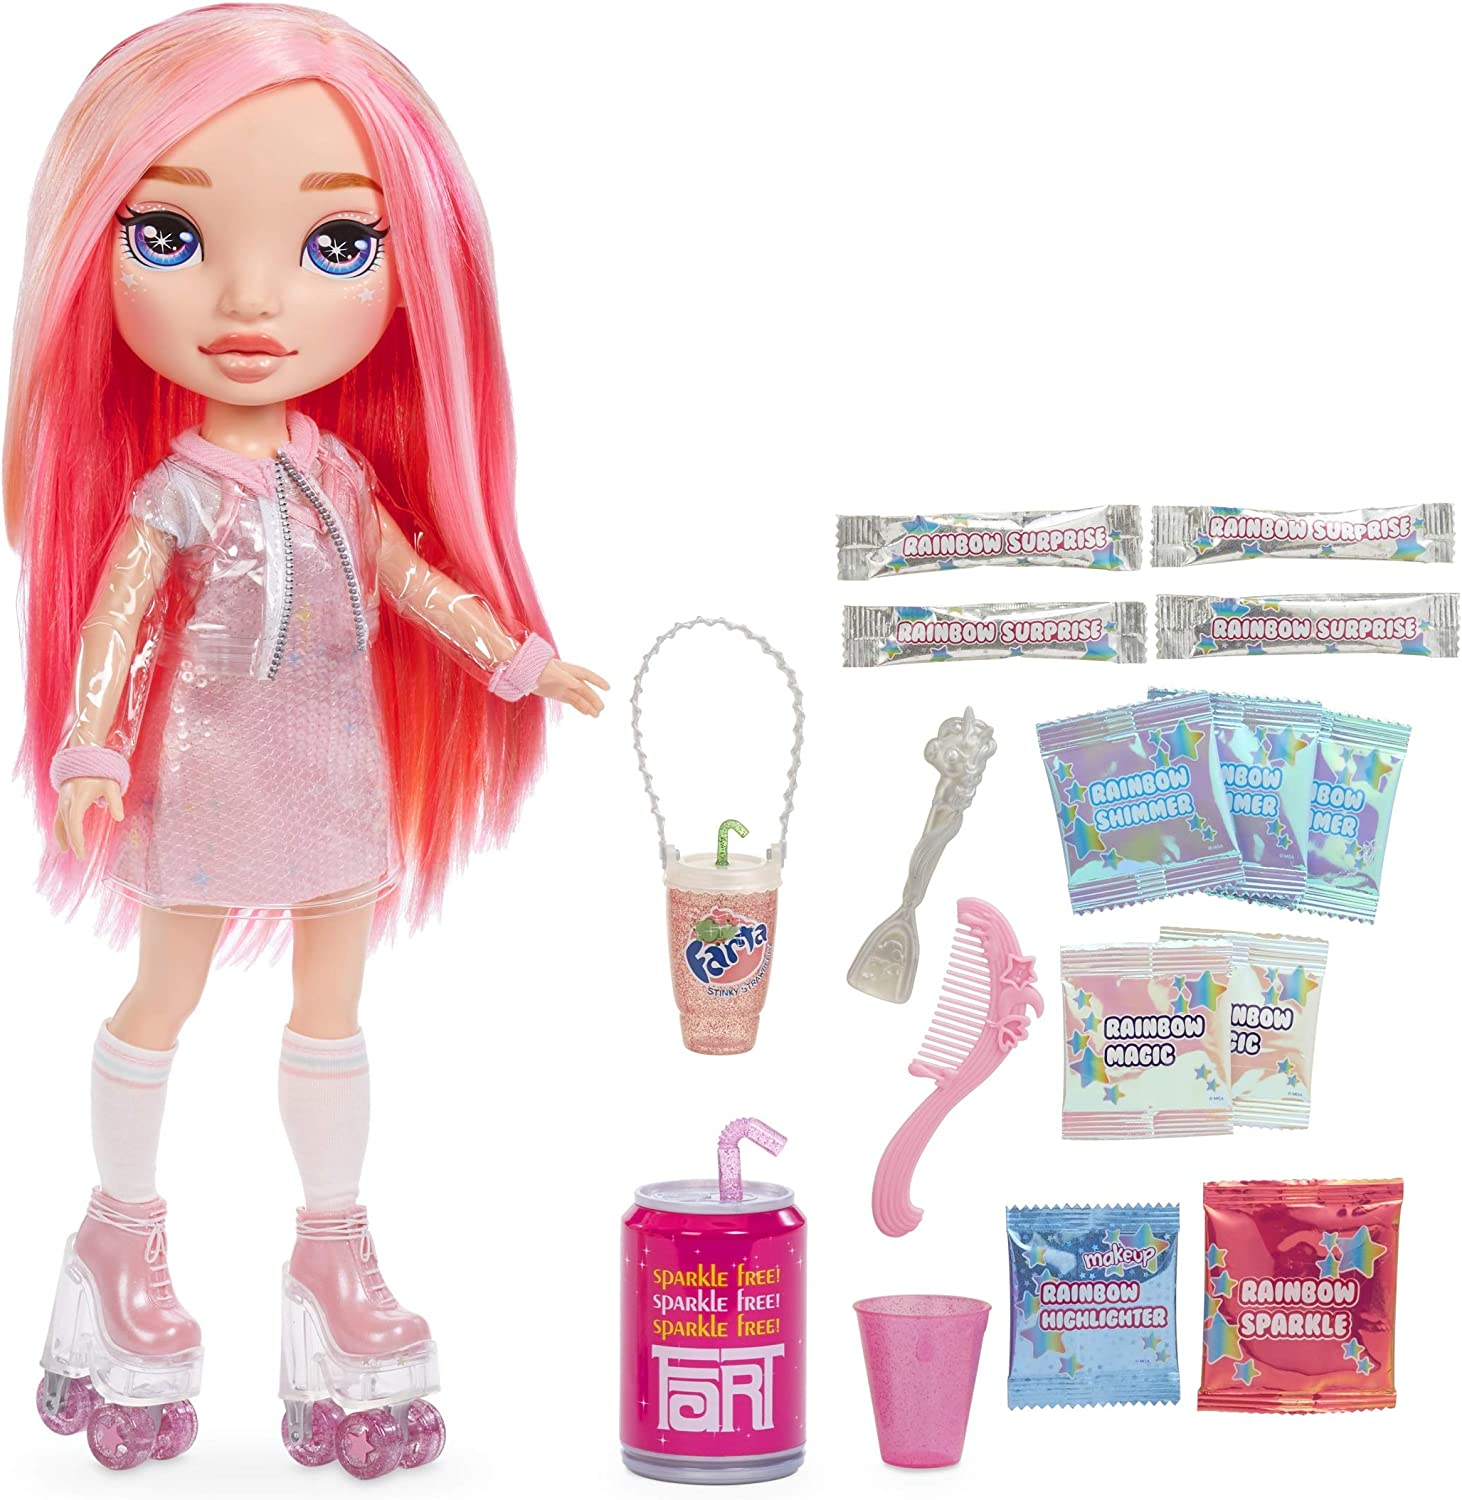 Colors of Rainbow High Surprise Large Doll- Pink Doll